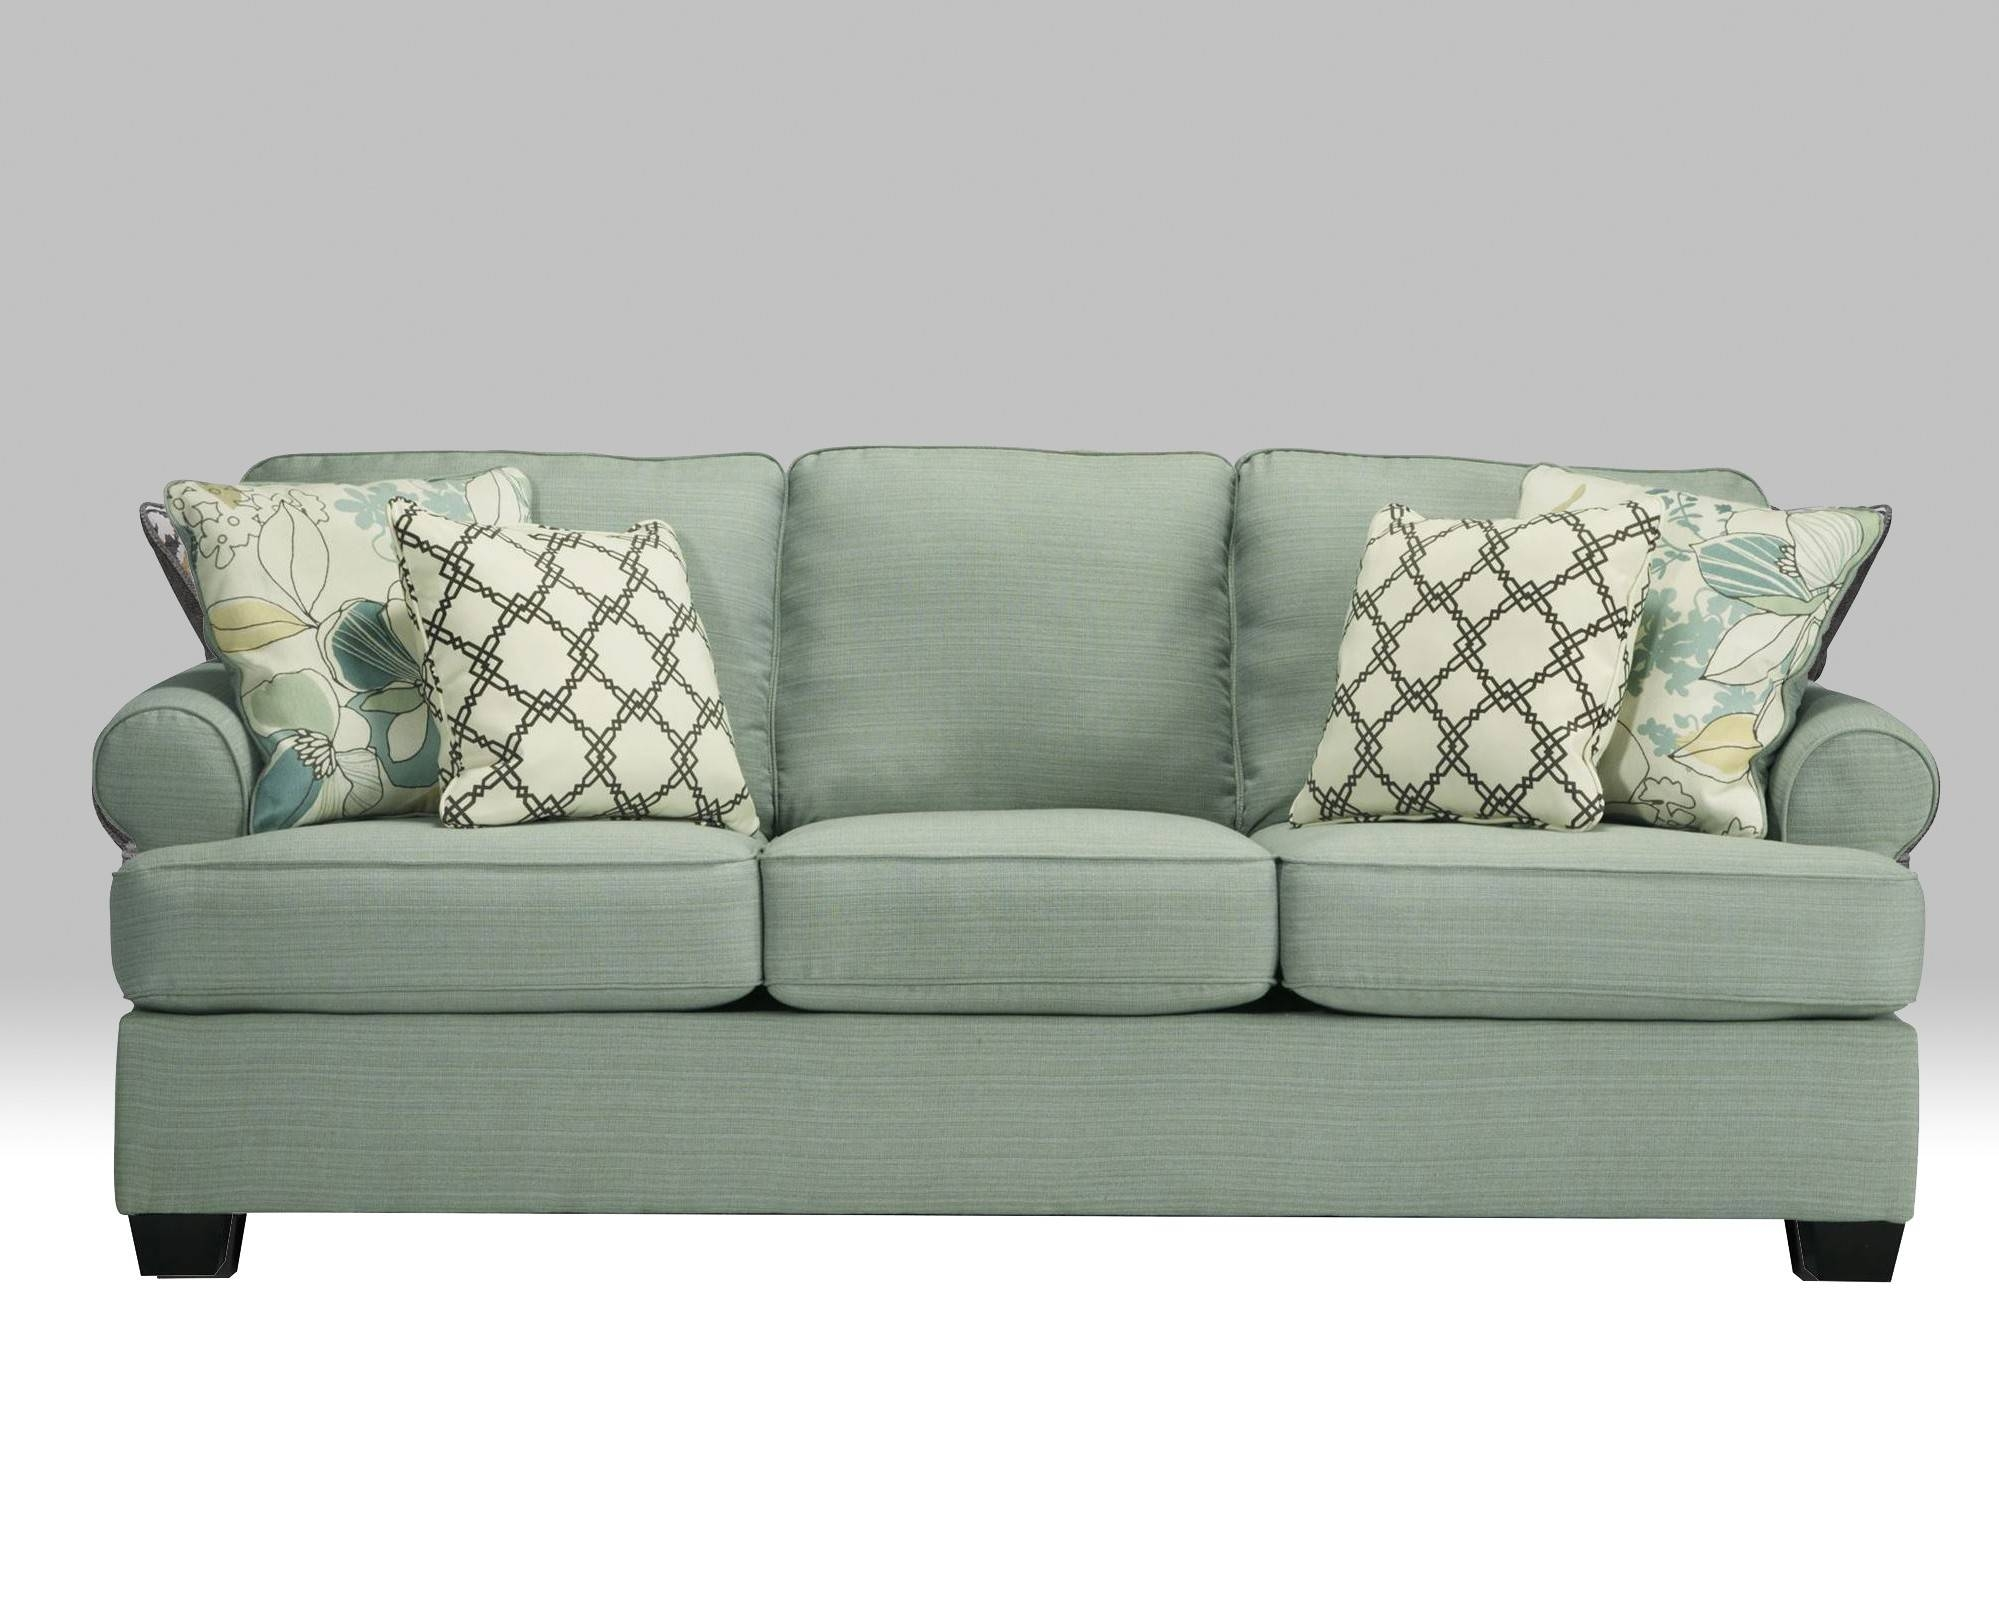 Daystar Seafoam Sofa For $390.00 - Furnitureusa with Seafoam Sofas (Image 7 of 15)